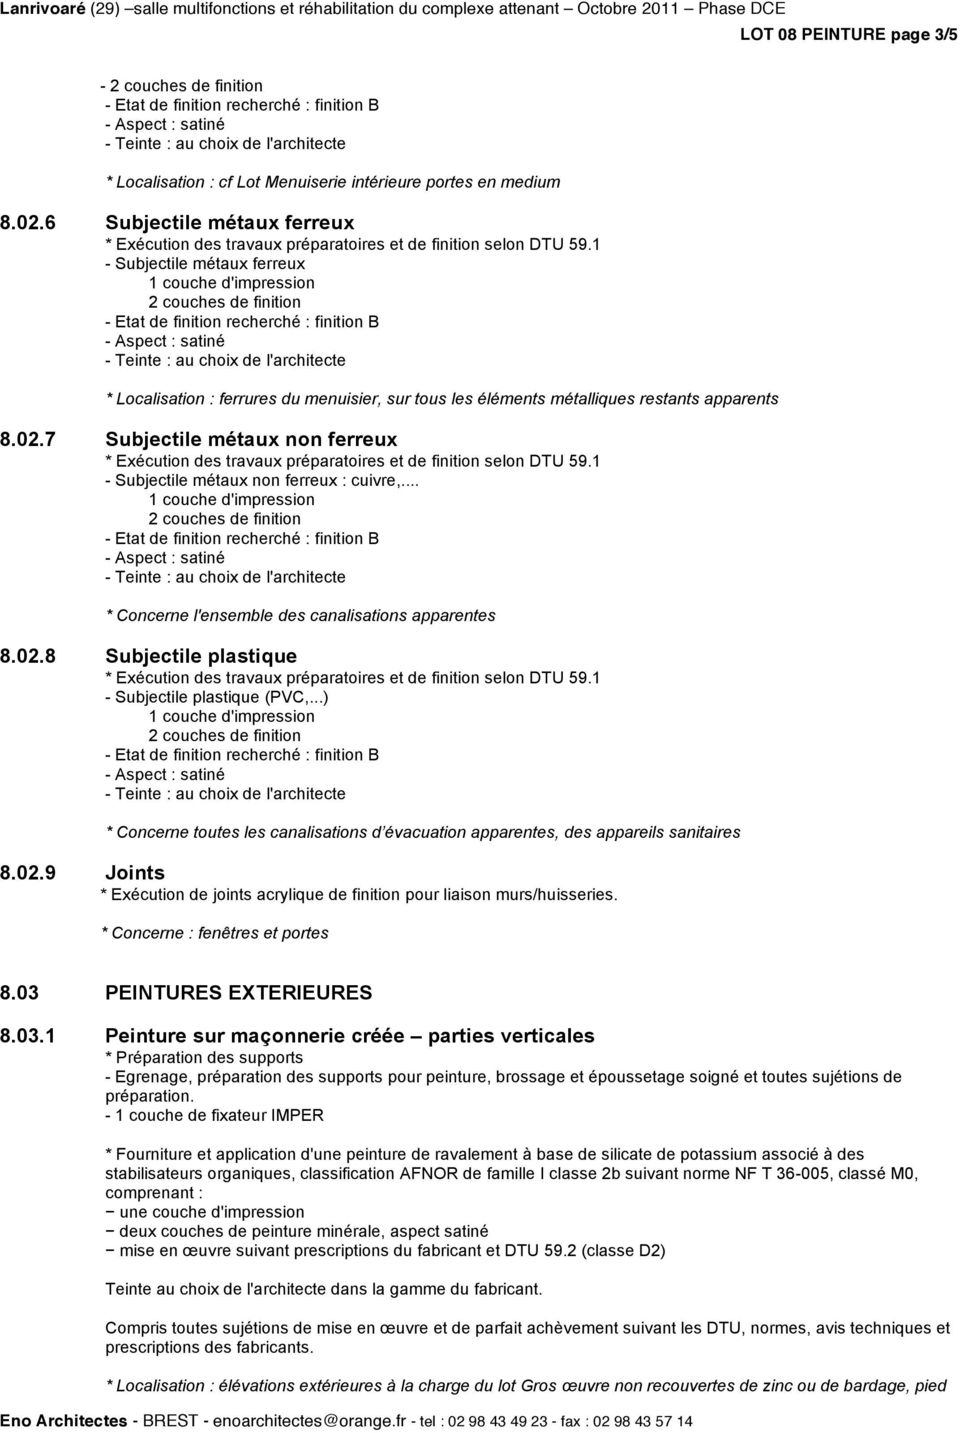 7 Subjectile métaux non ferreux - Subjectile métaux non ferreux : cuivre,... * Concerne l'ensemble des canalisations apparentes 8.02.8 Subjectile plastique - Subjectile plastique (PVC,.